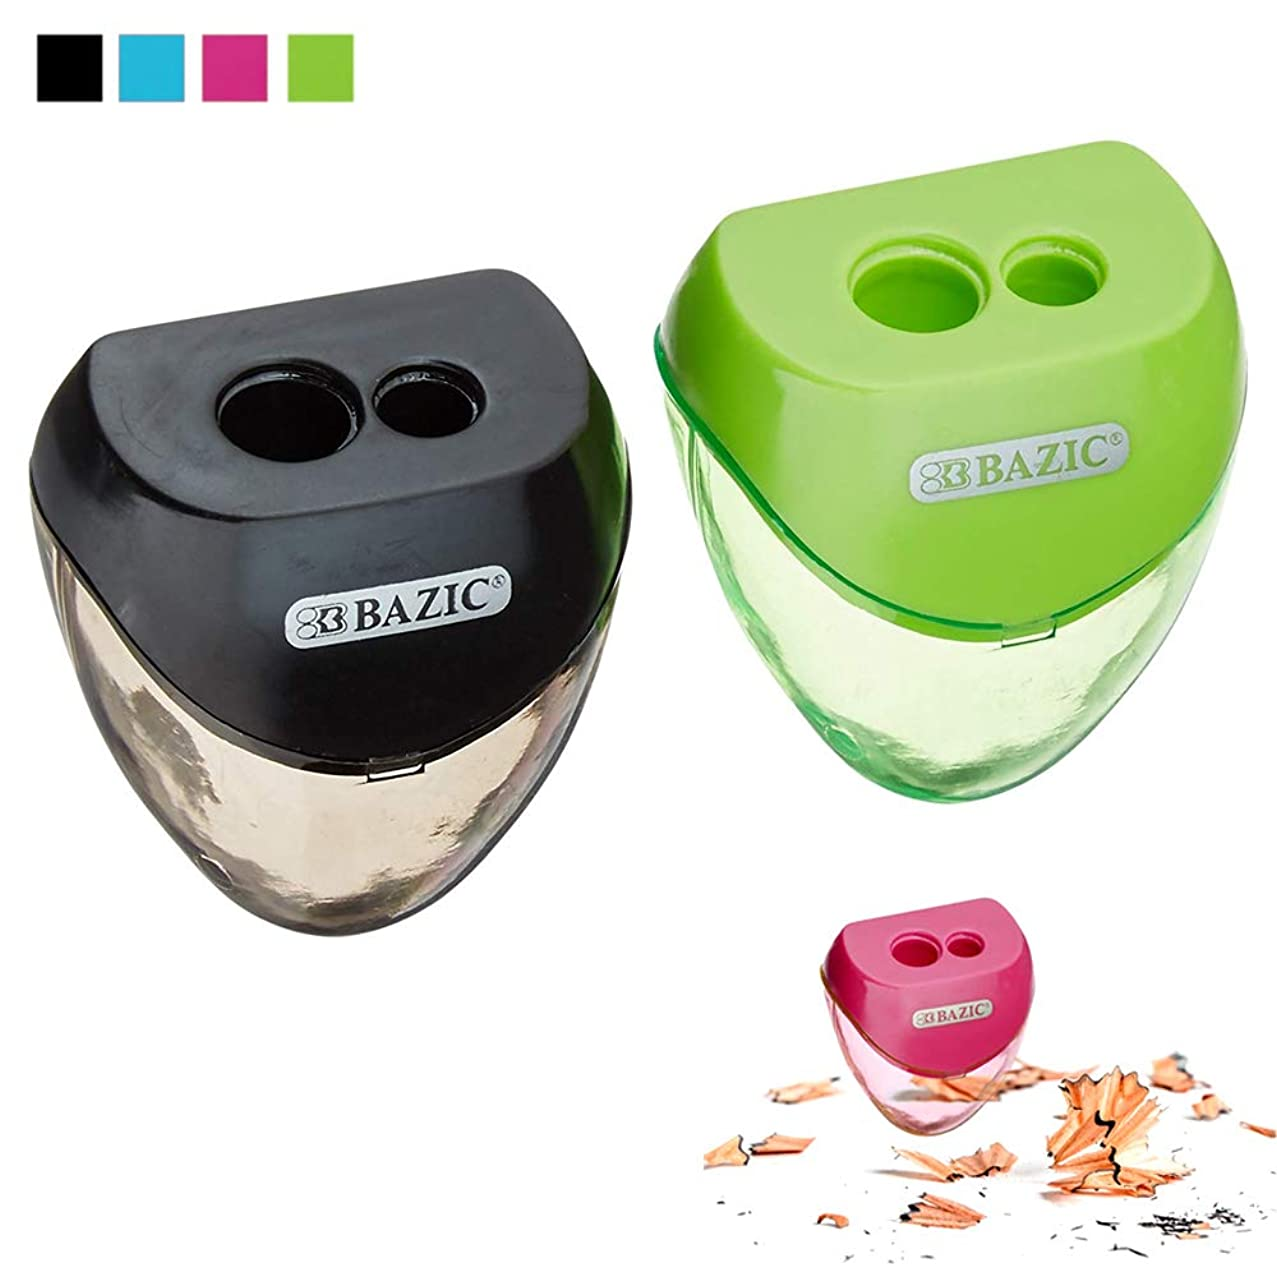 2 Set Pencil Sharpener Double Hole Cutter Colors School Supplies Office Art Kids